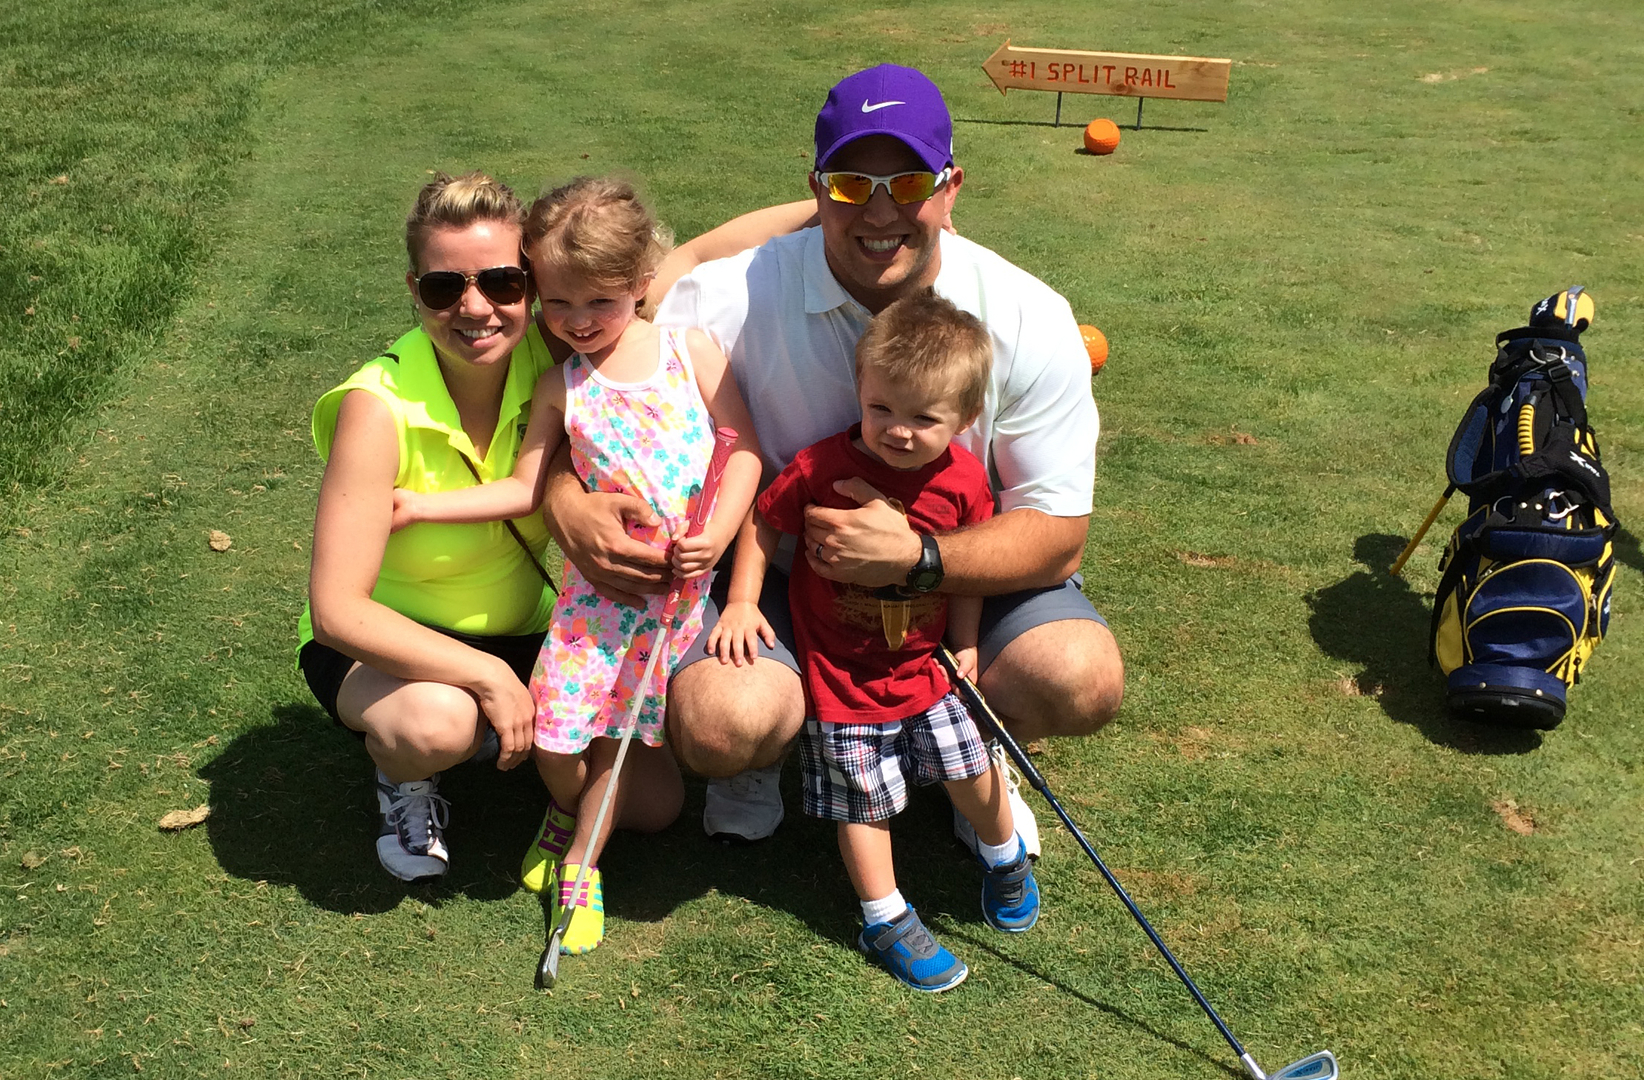 Family Golf - If you are in a family where your kids play golf, and maybe you would like to learn? Sign up for my family golf clinic and enjoy quality family time while having the time of your life learning the game of golf! *Equipment provided if needed*